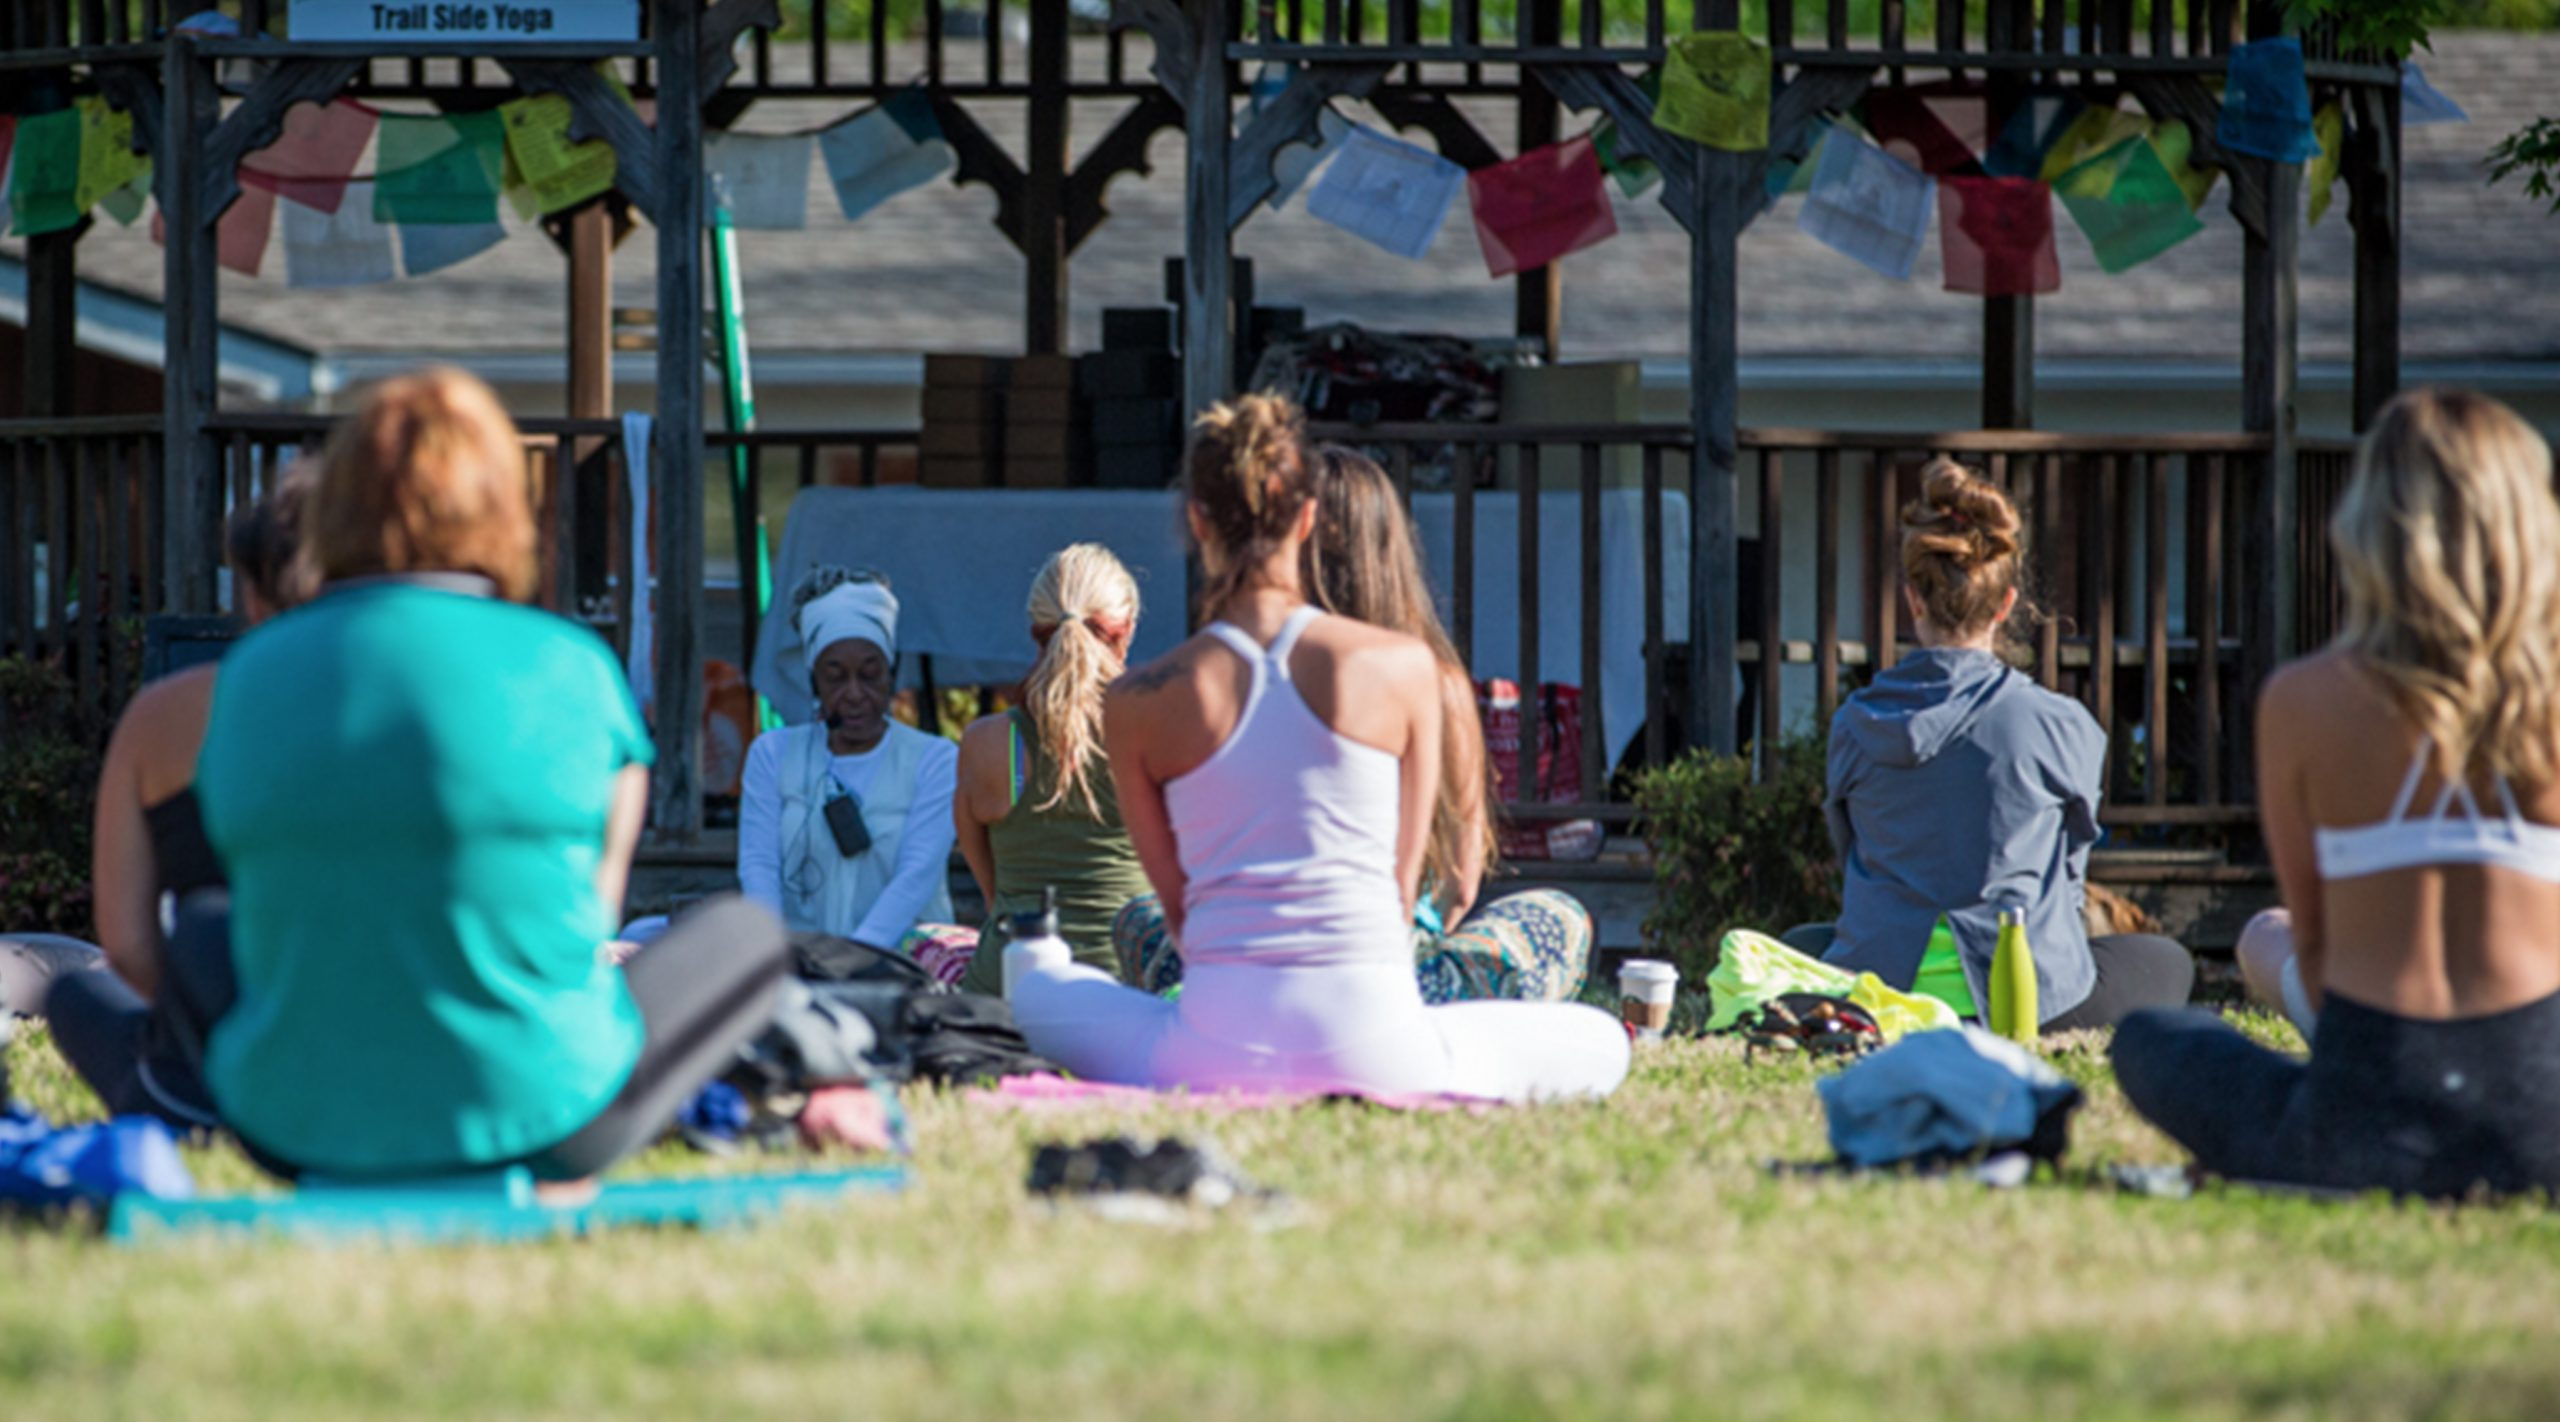 Fayetteville Yoga Fest in Northwest Arkansas.